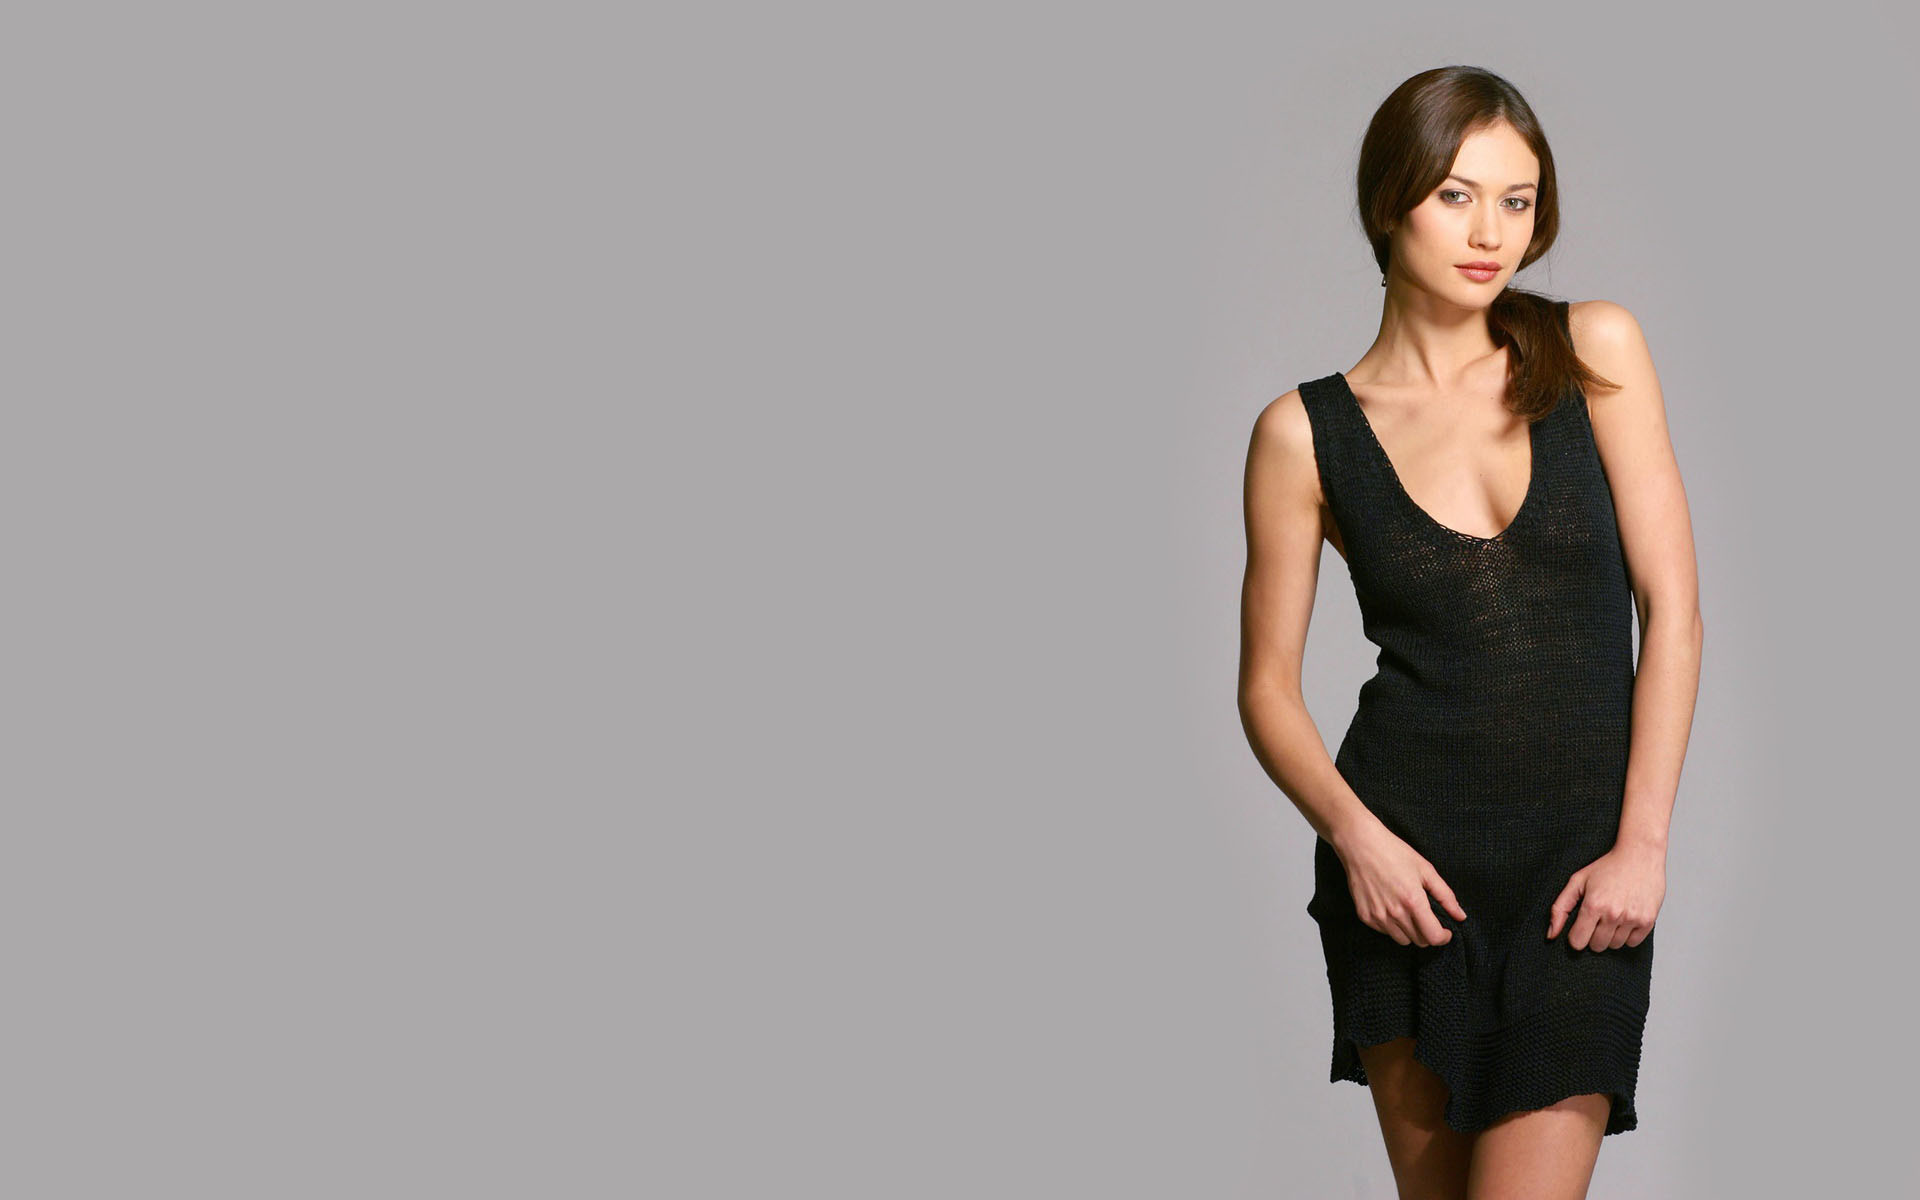 1920x1200 Olga Kurylenko Hd wallpaper